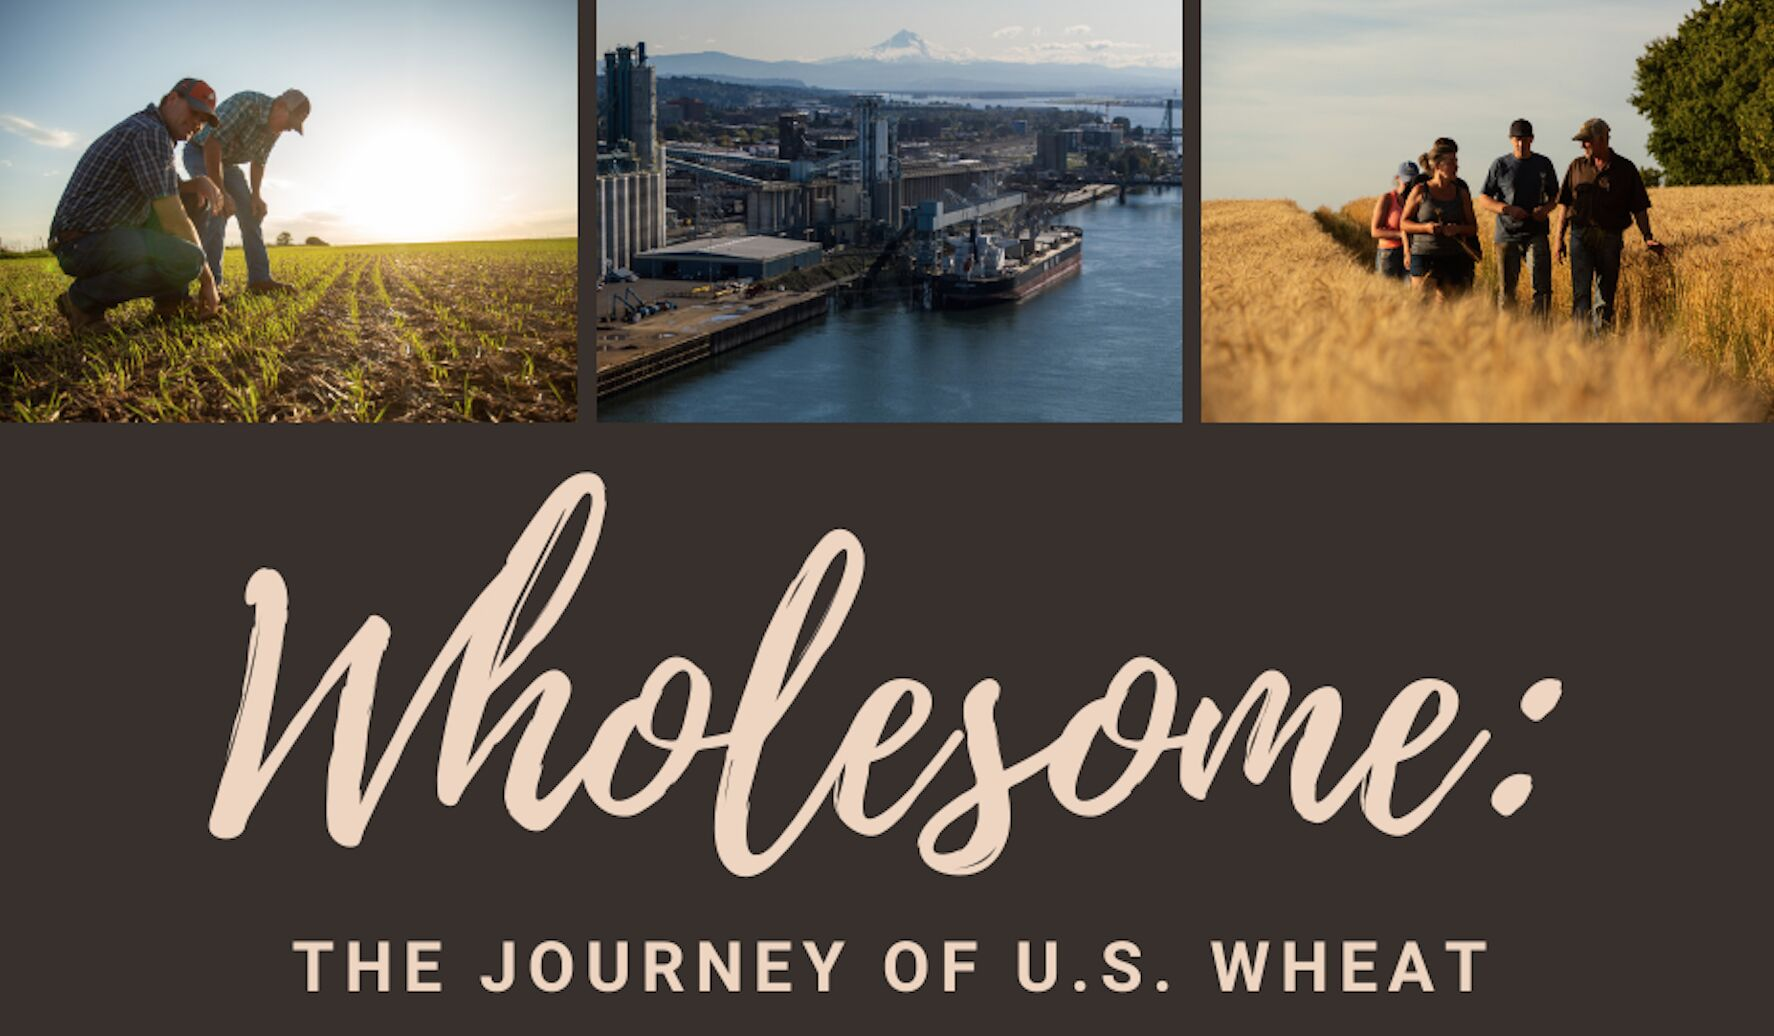 Movie shares the wholesome story of American wheat